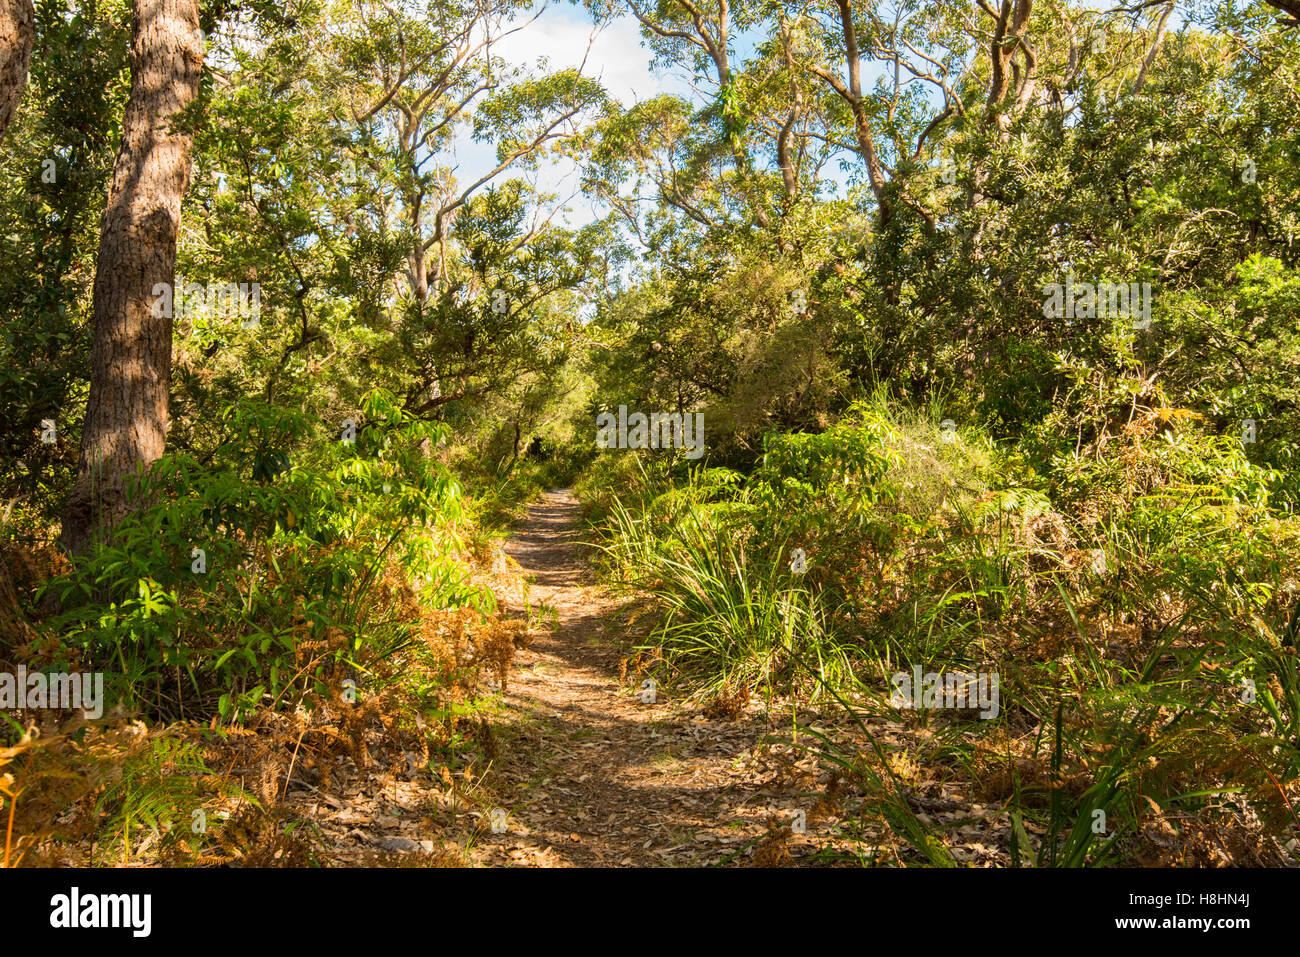 A narrow sandy path through native vegetation leads to an Australian beach on the New South Wales south coast - Stock Image